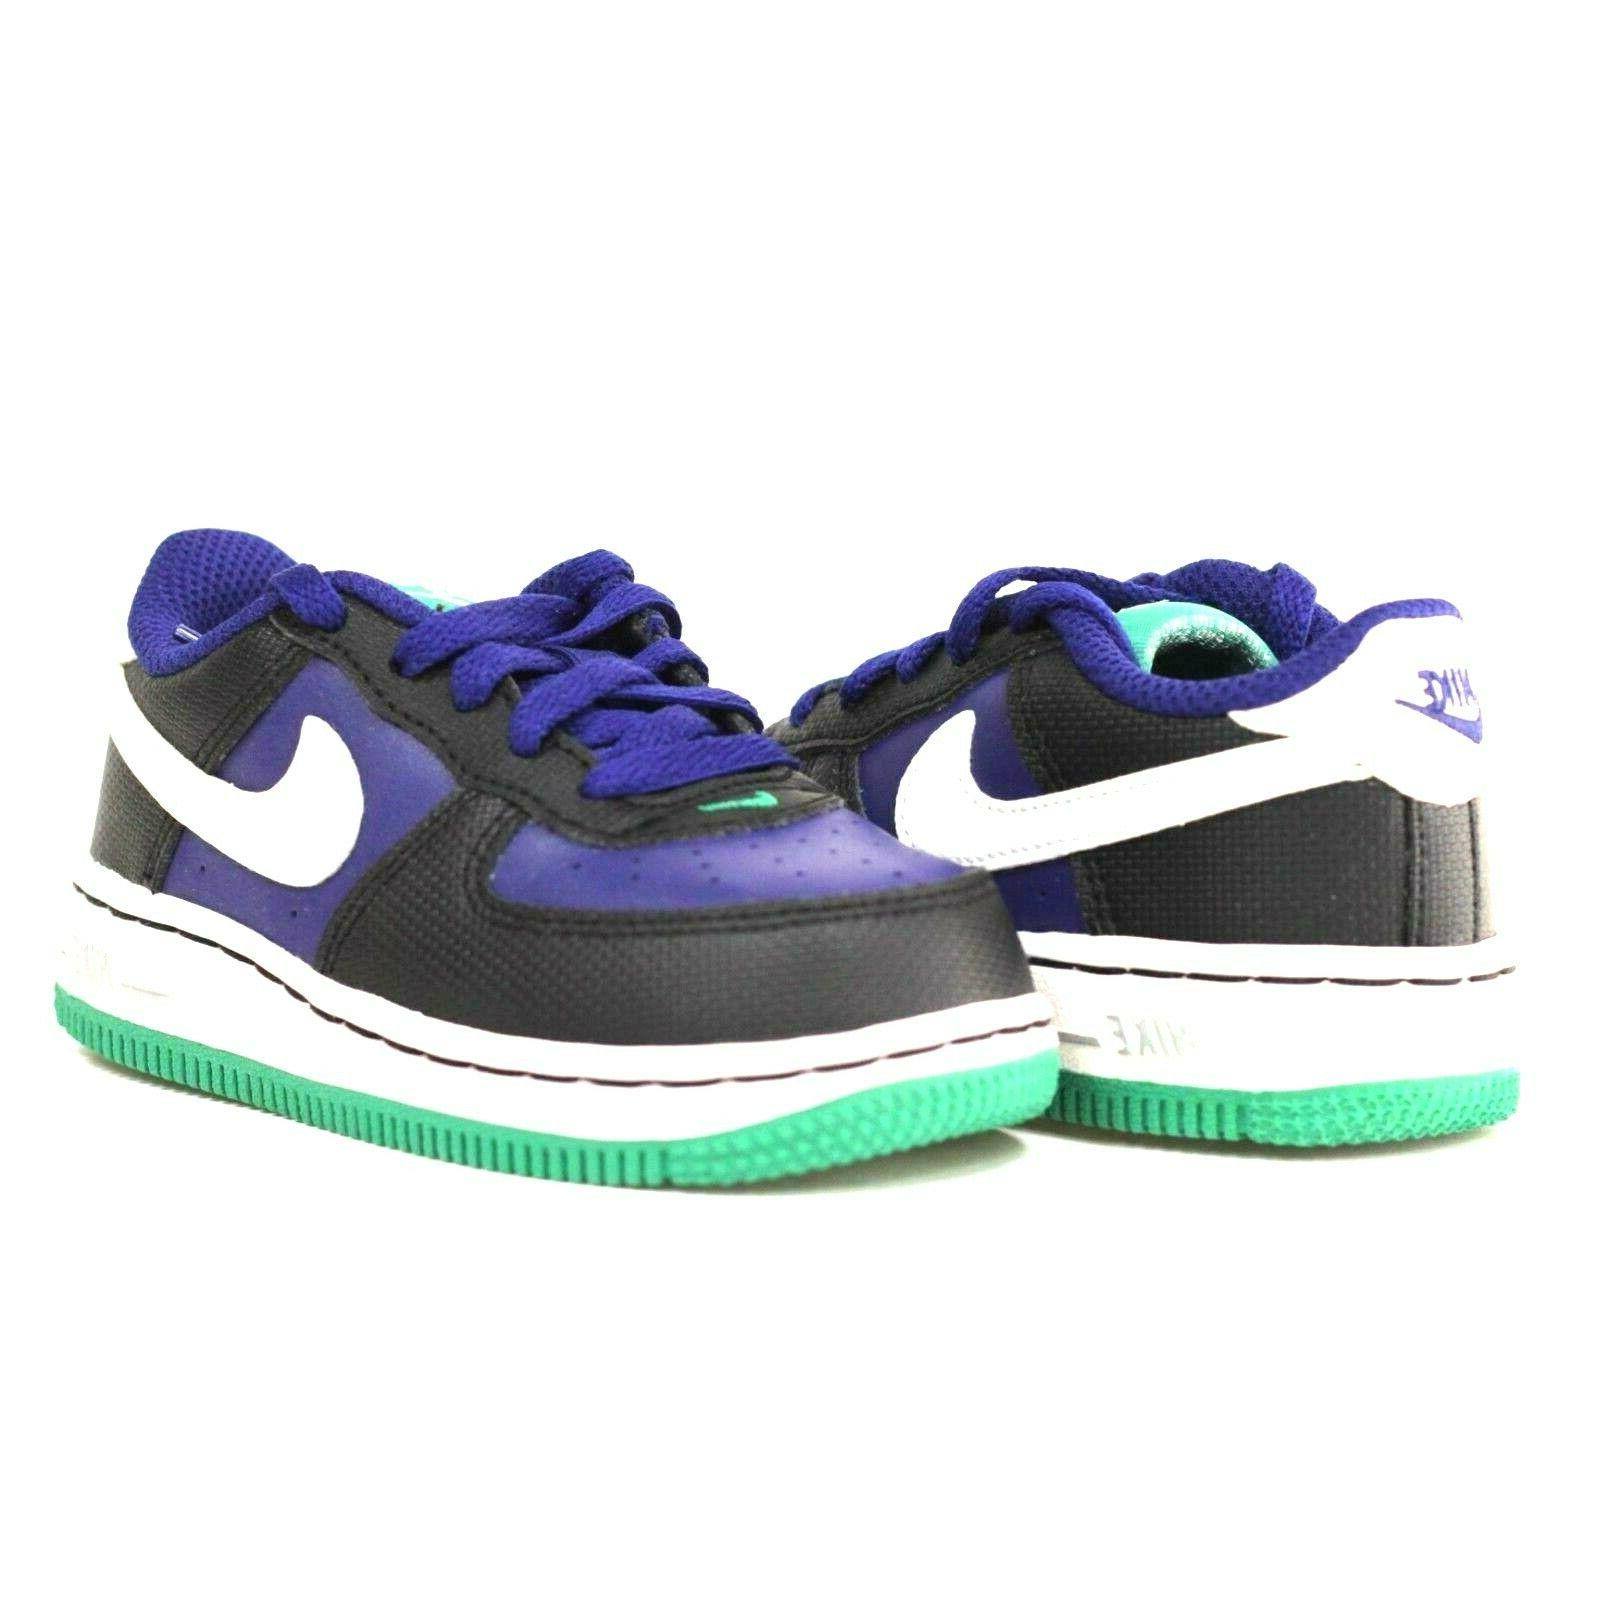 Nike Shoes NEW AUTHENTIC Royal 314194-415